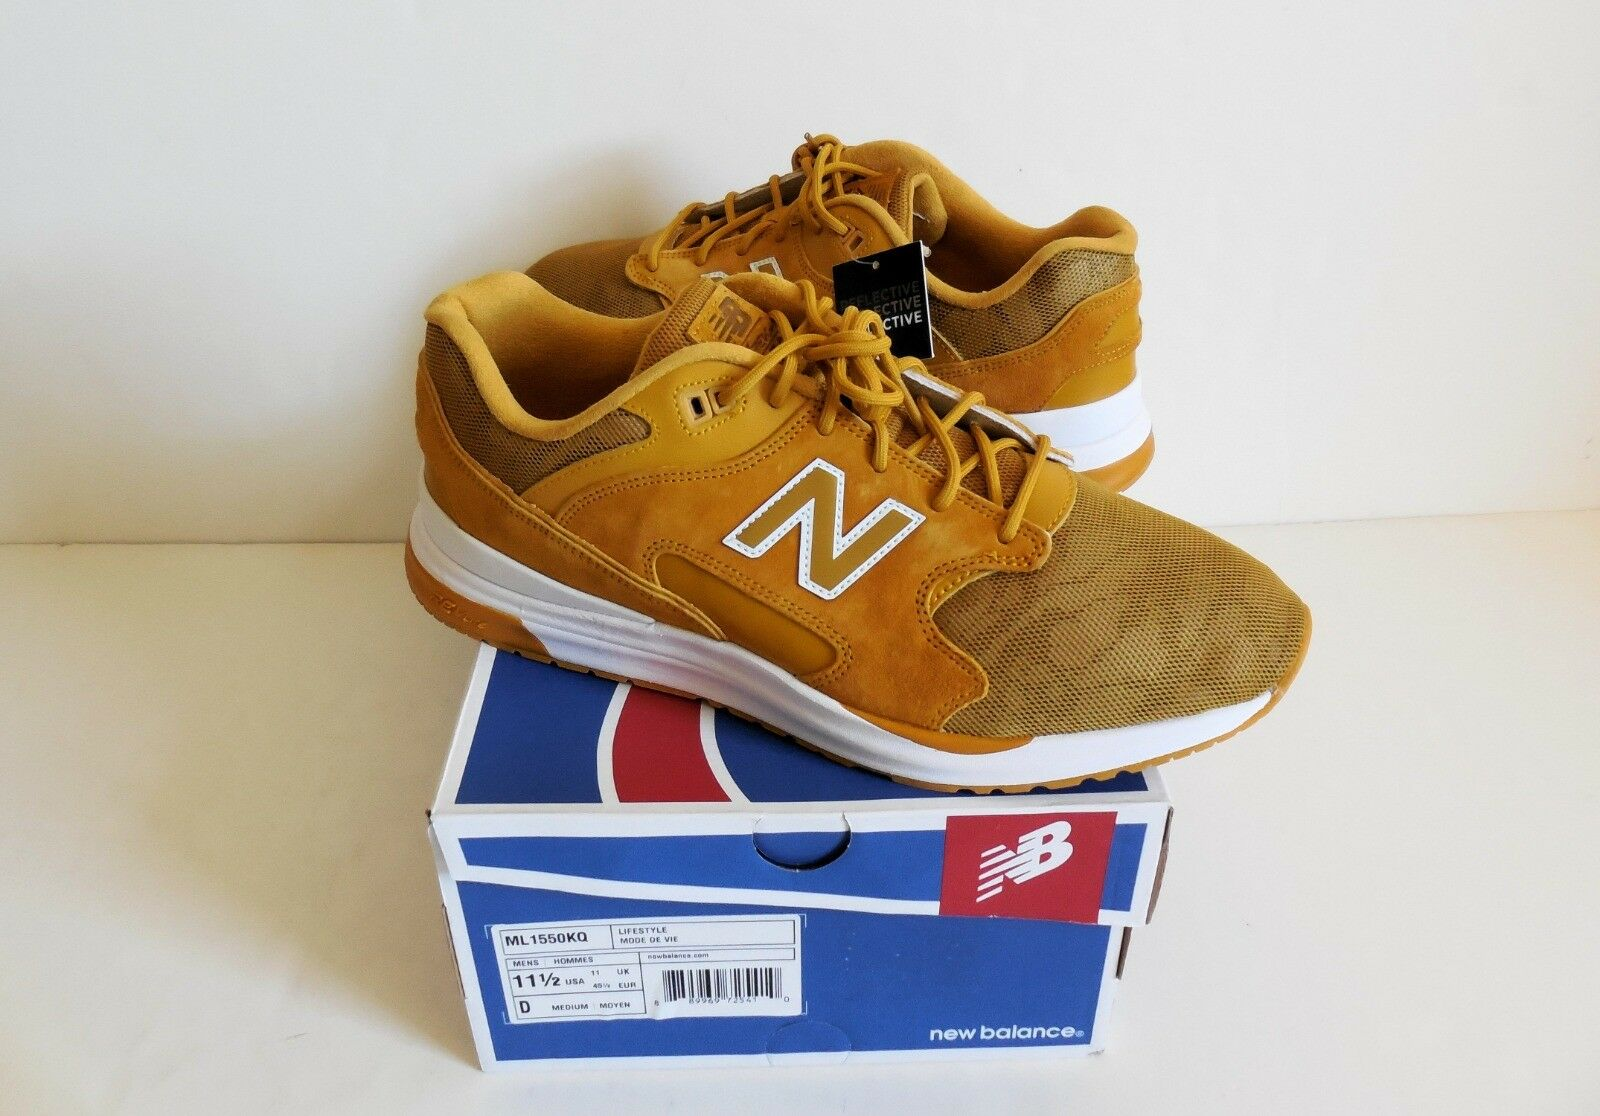 New Balance ML1550KQ REVlite Reflctive Men's Lifestyle shoes 11.5D New